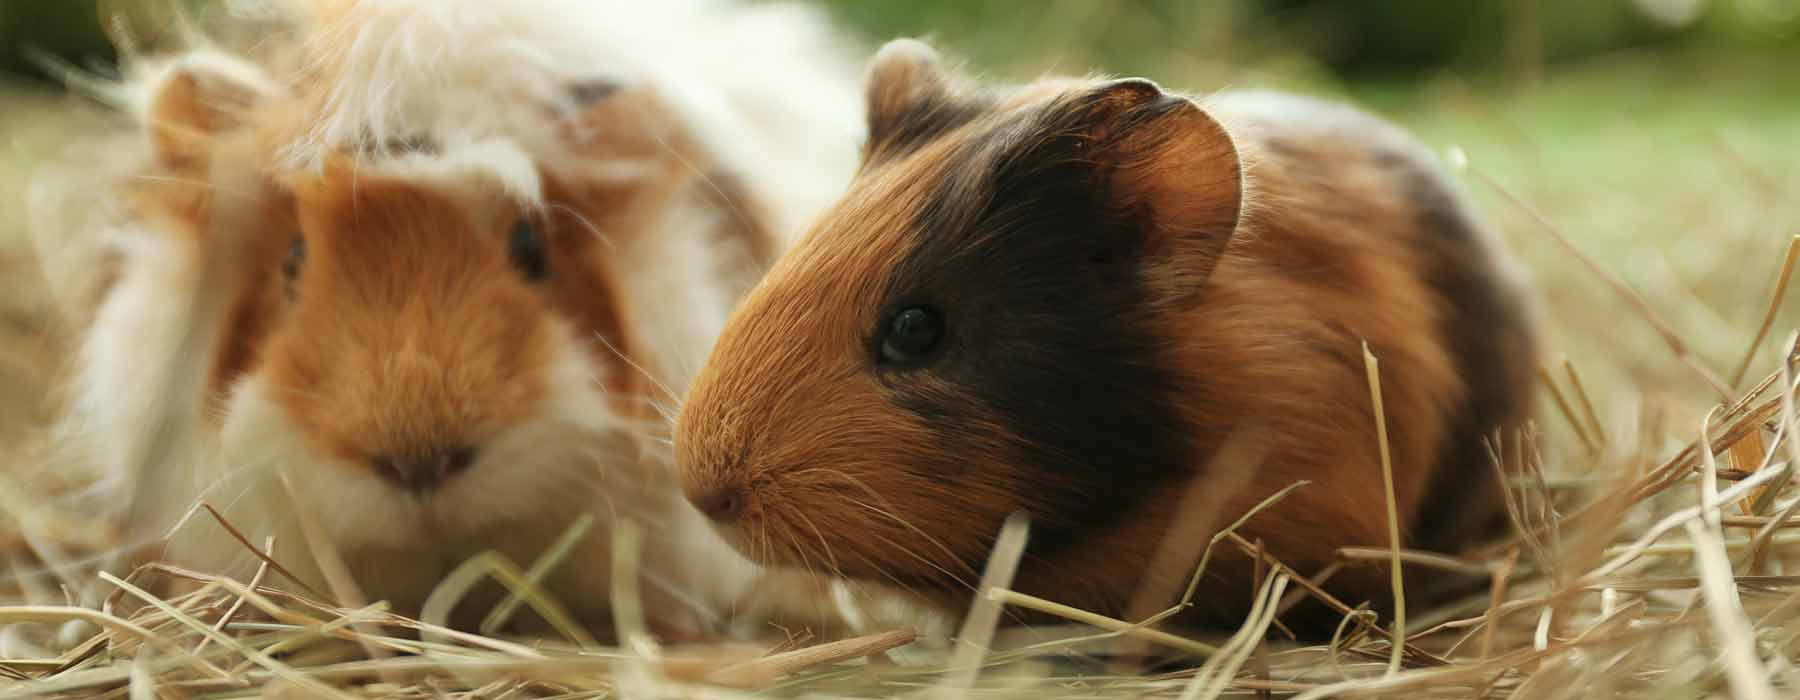 two guinea pigs eating hay